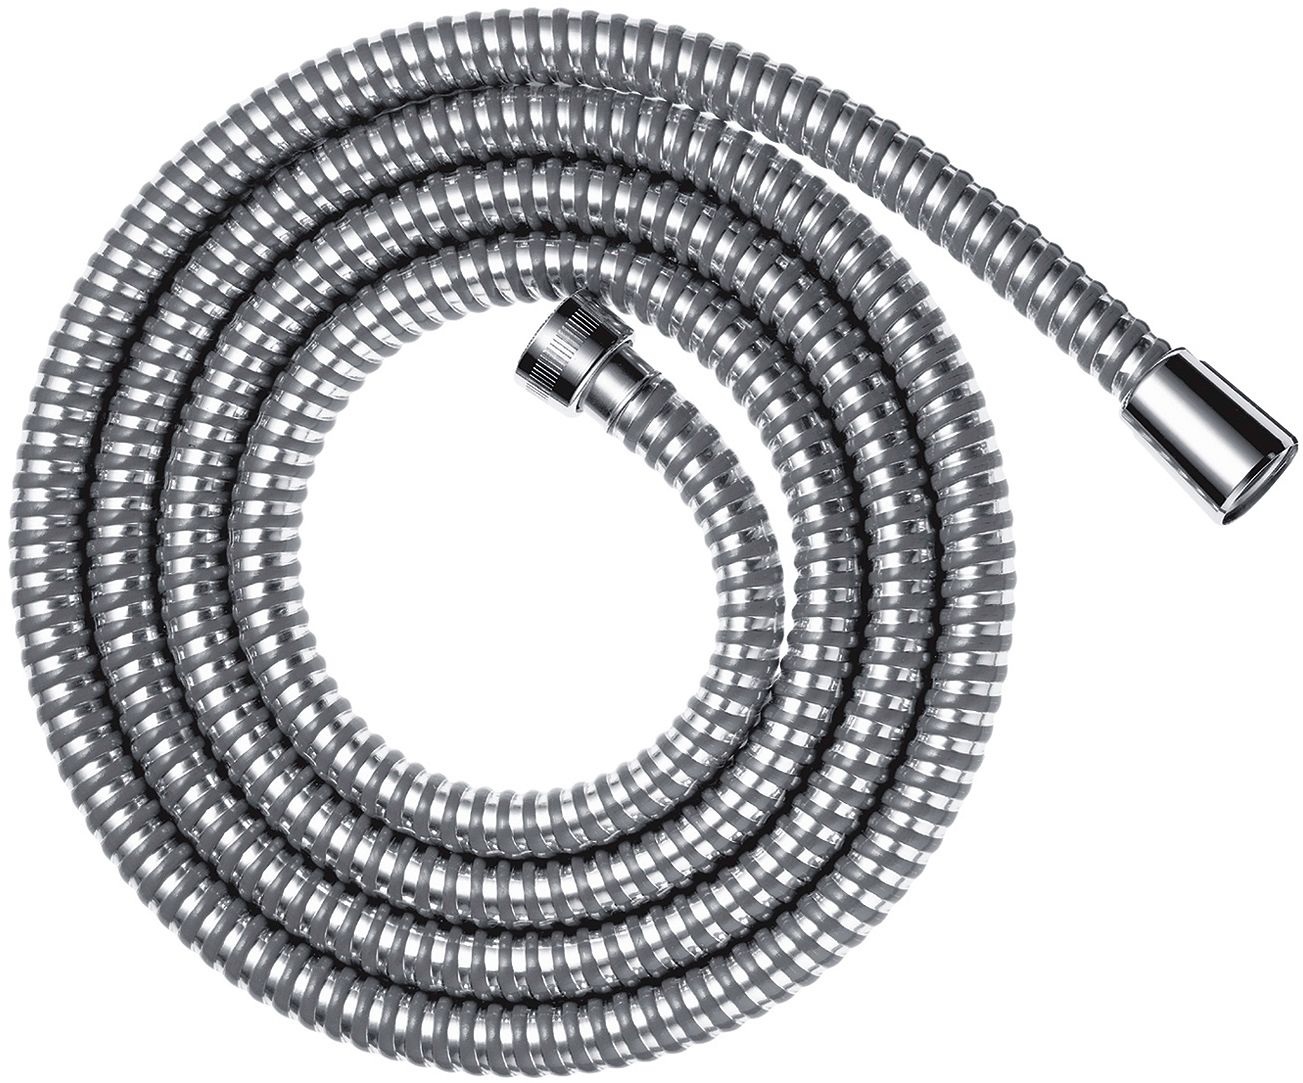 "FLEXIBLE METAFLEX'C HG 125-1/2""-1/2"" CHR"